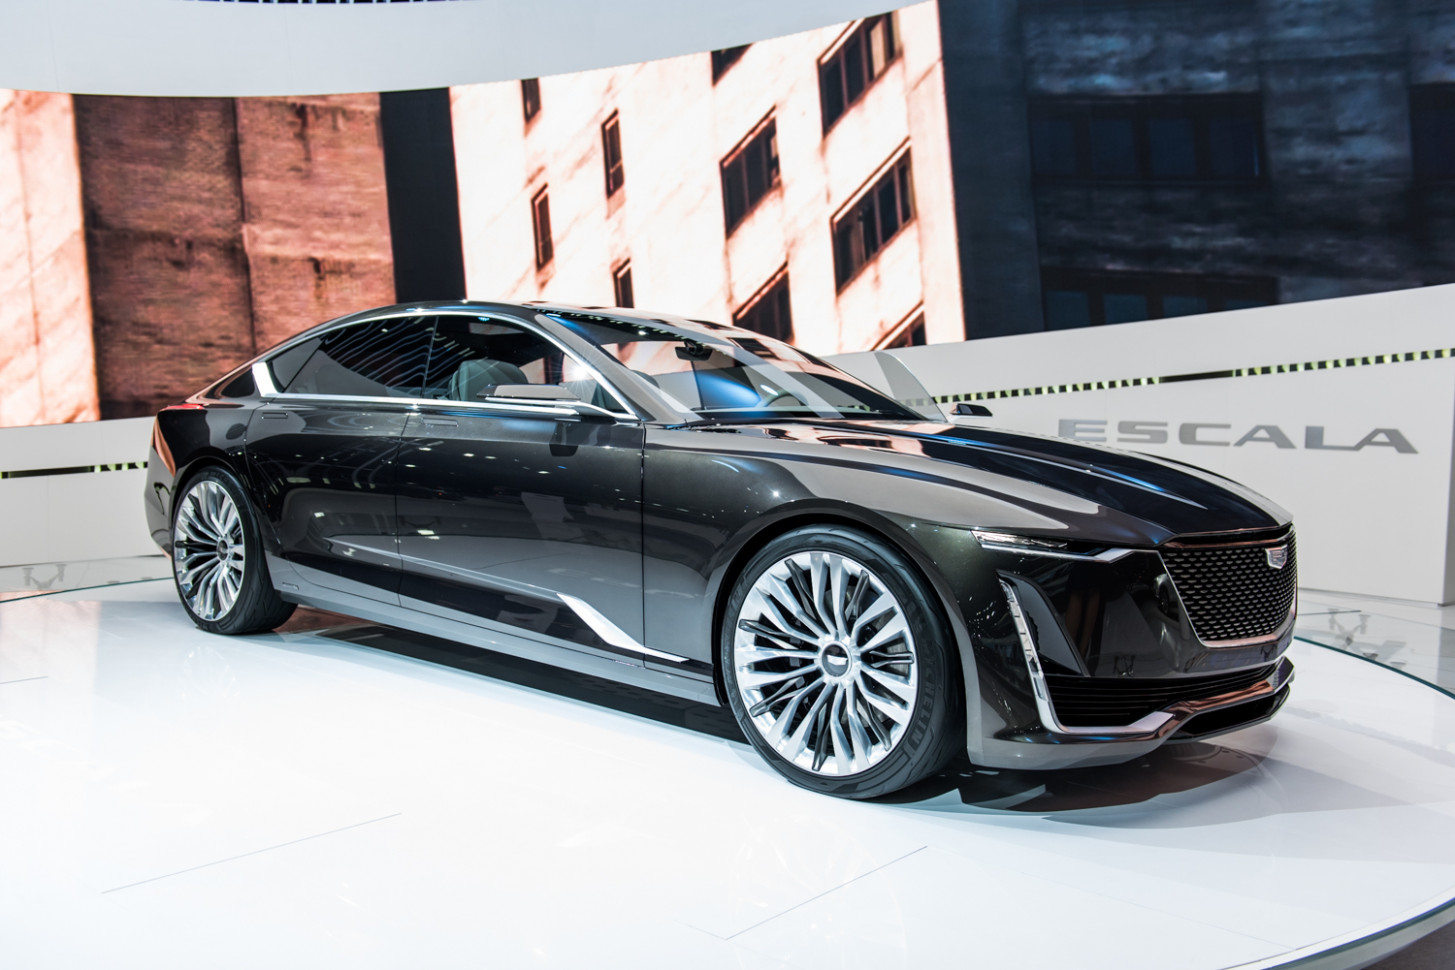 Redesign and Concept Cadillac Electric Car 2022